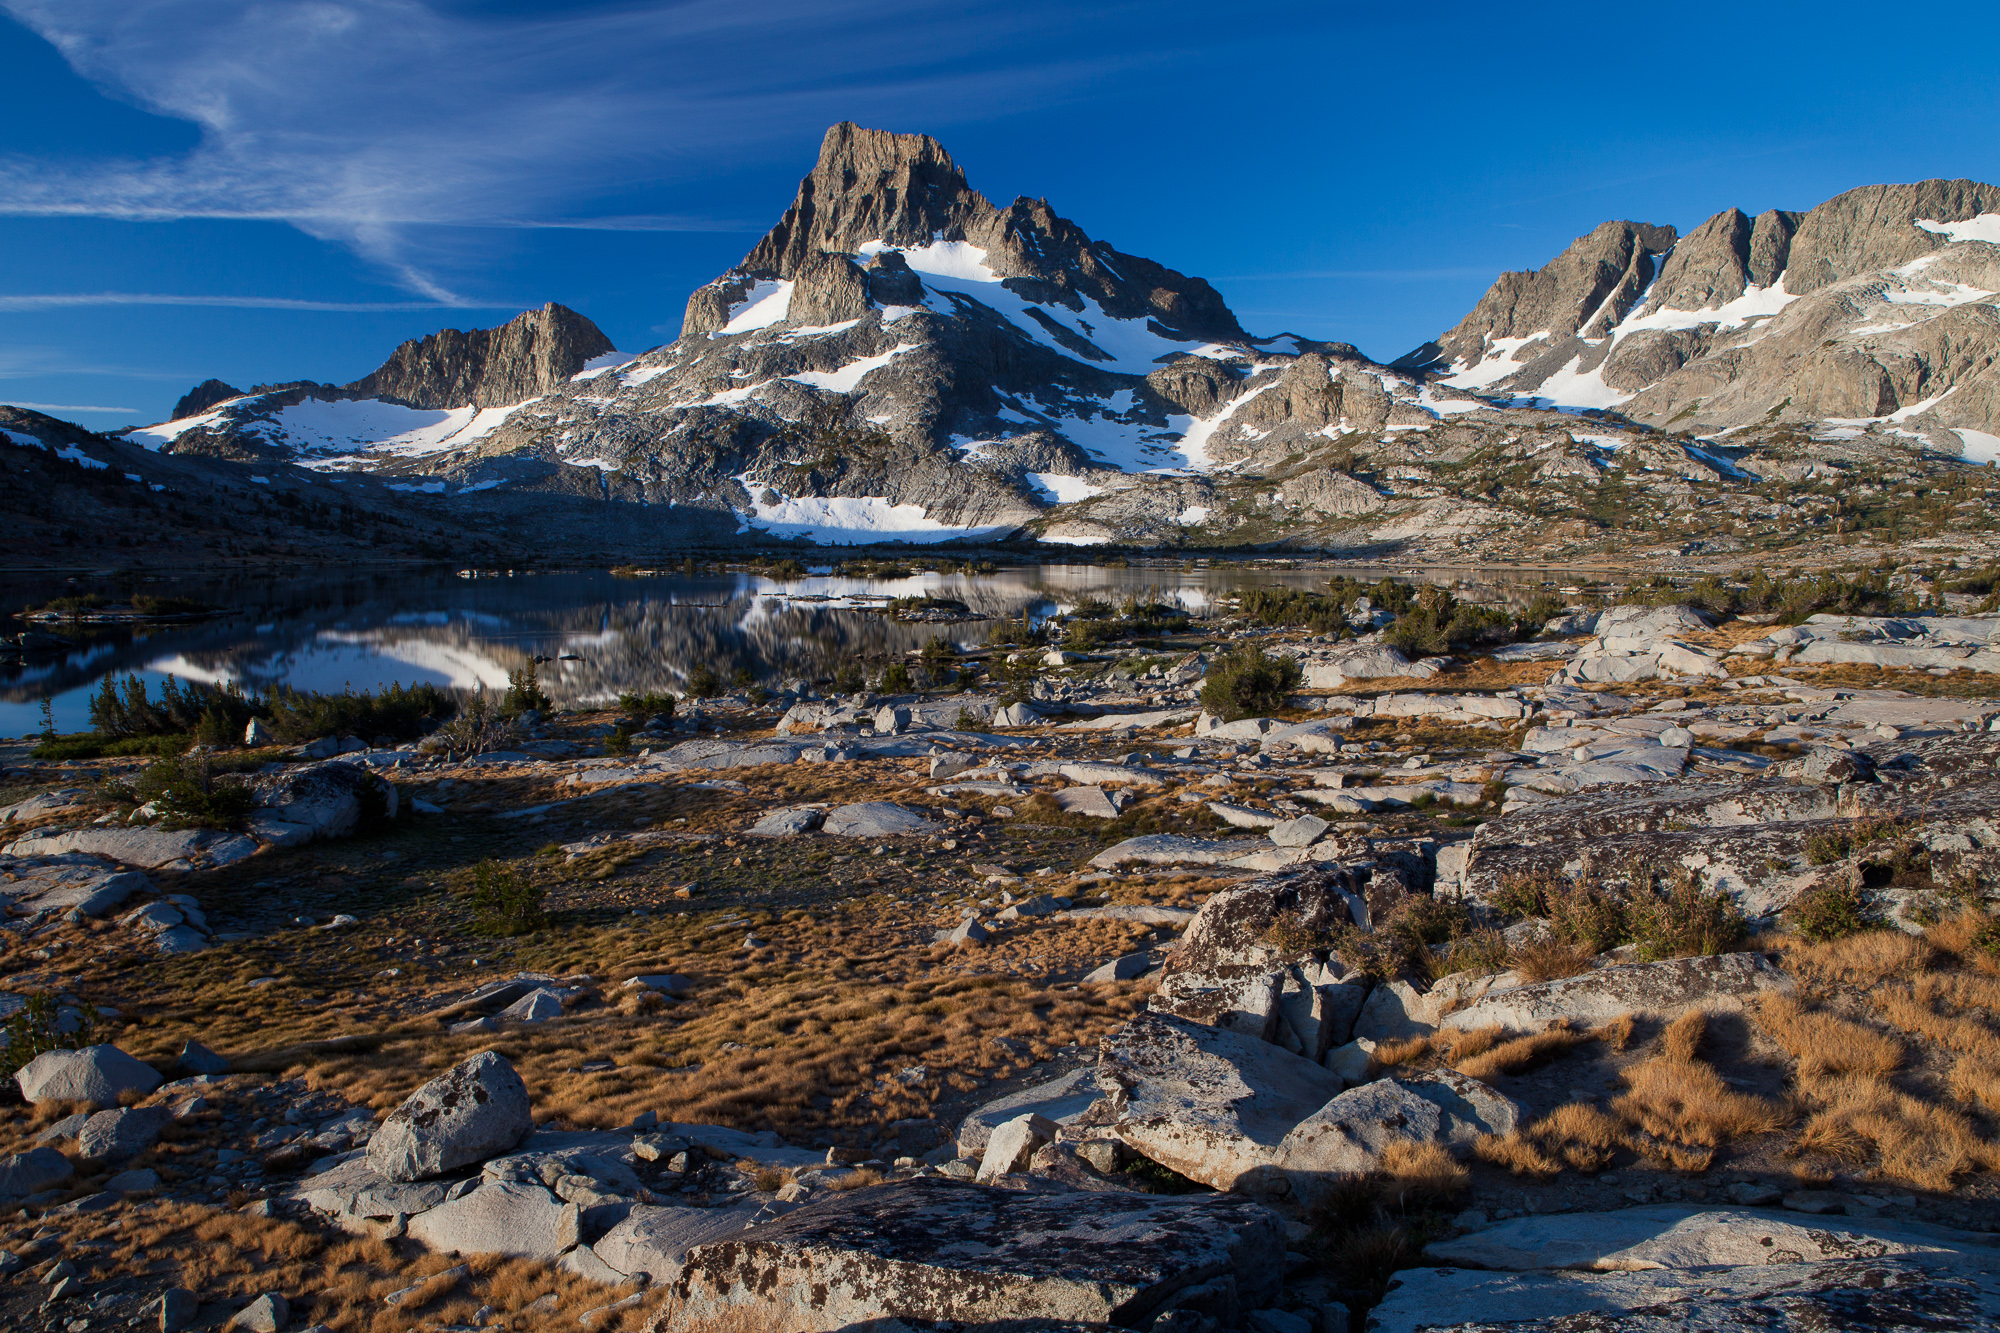 The sun rises over Thousand Island Lake and Banner Peak, Ansel Adams Wilderness